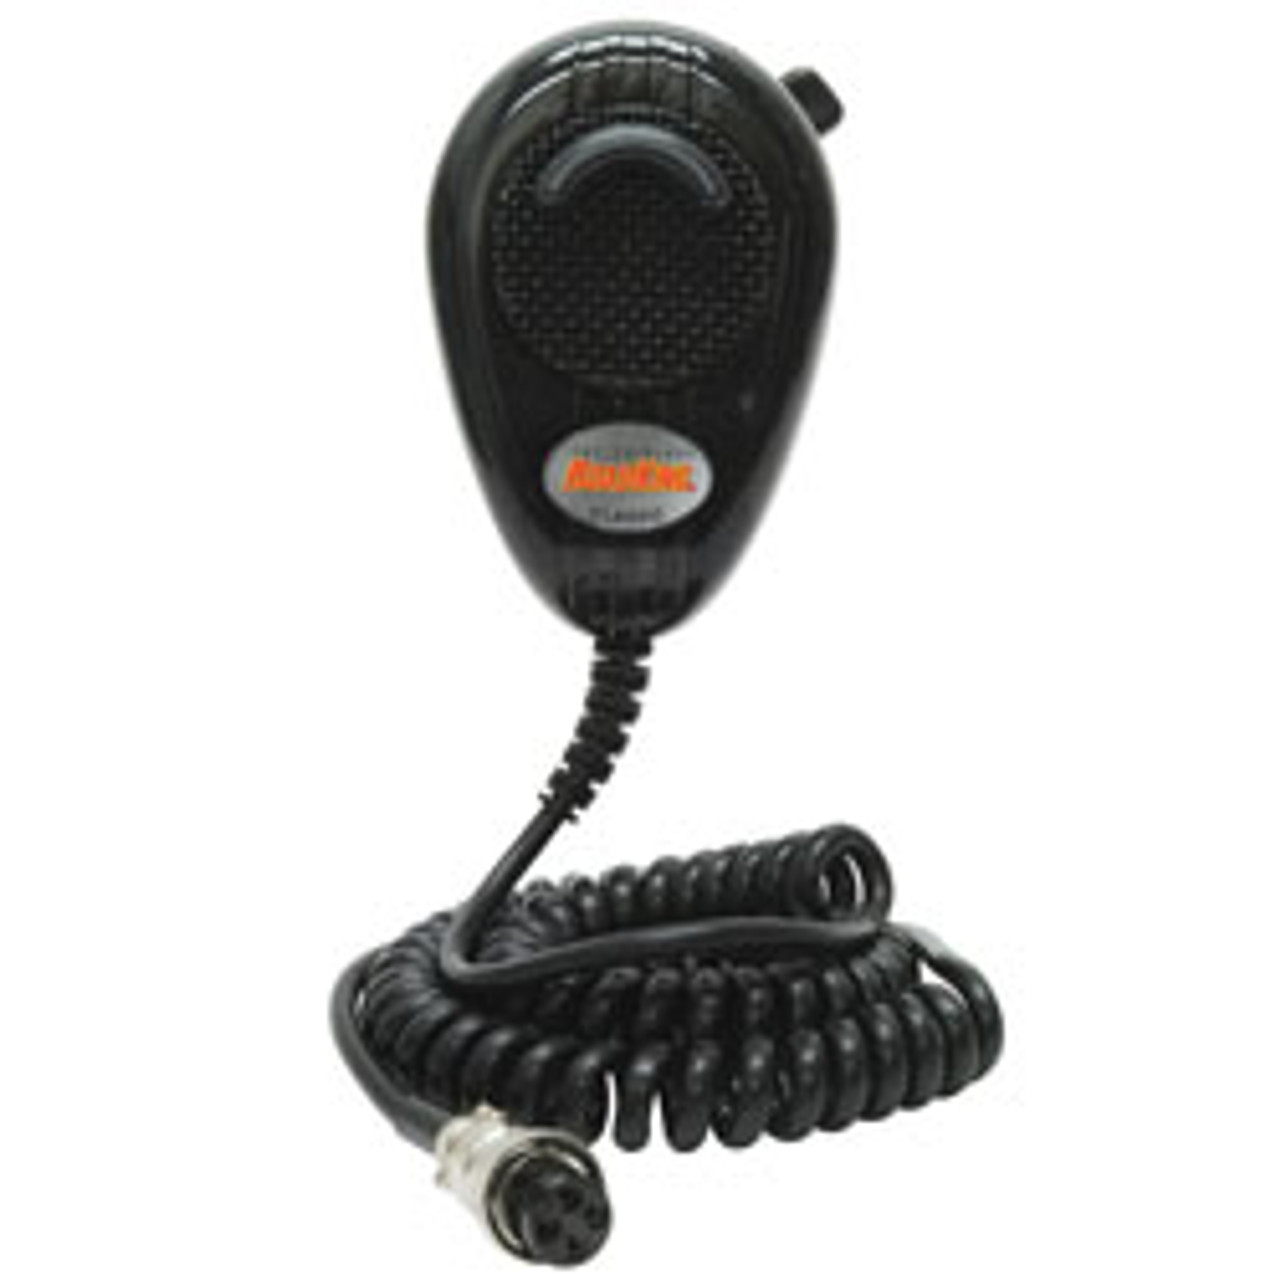 RoadKing - 4-Pin Dynamic Noise-Canceling CB Microphone, Black